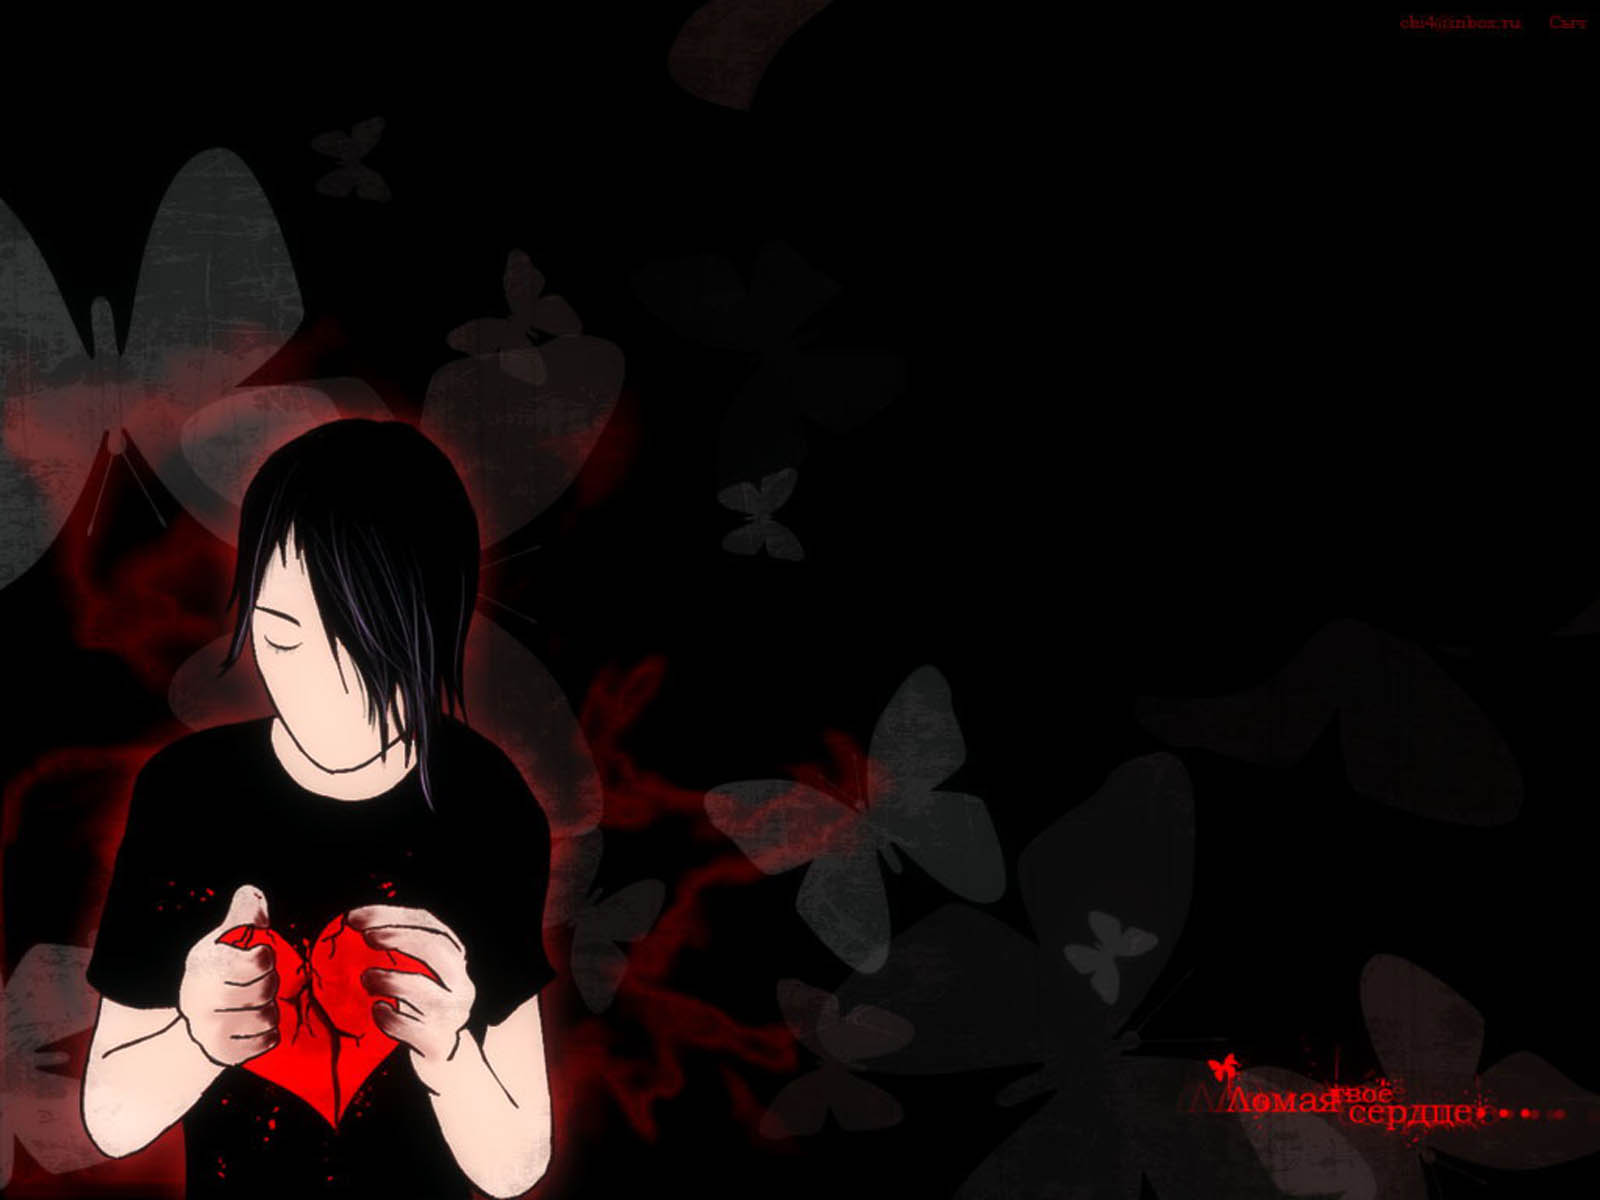 Animasi emo anime wallpaper - Emo anime wallpaper ...